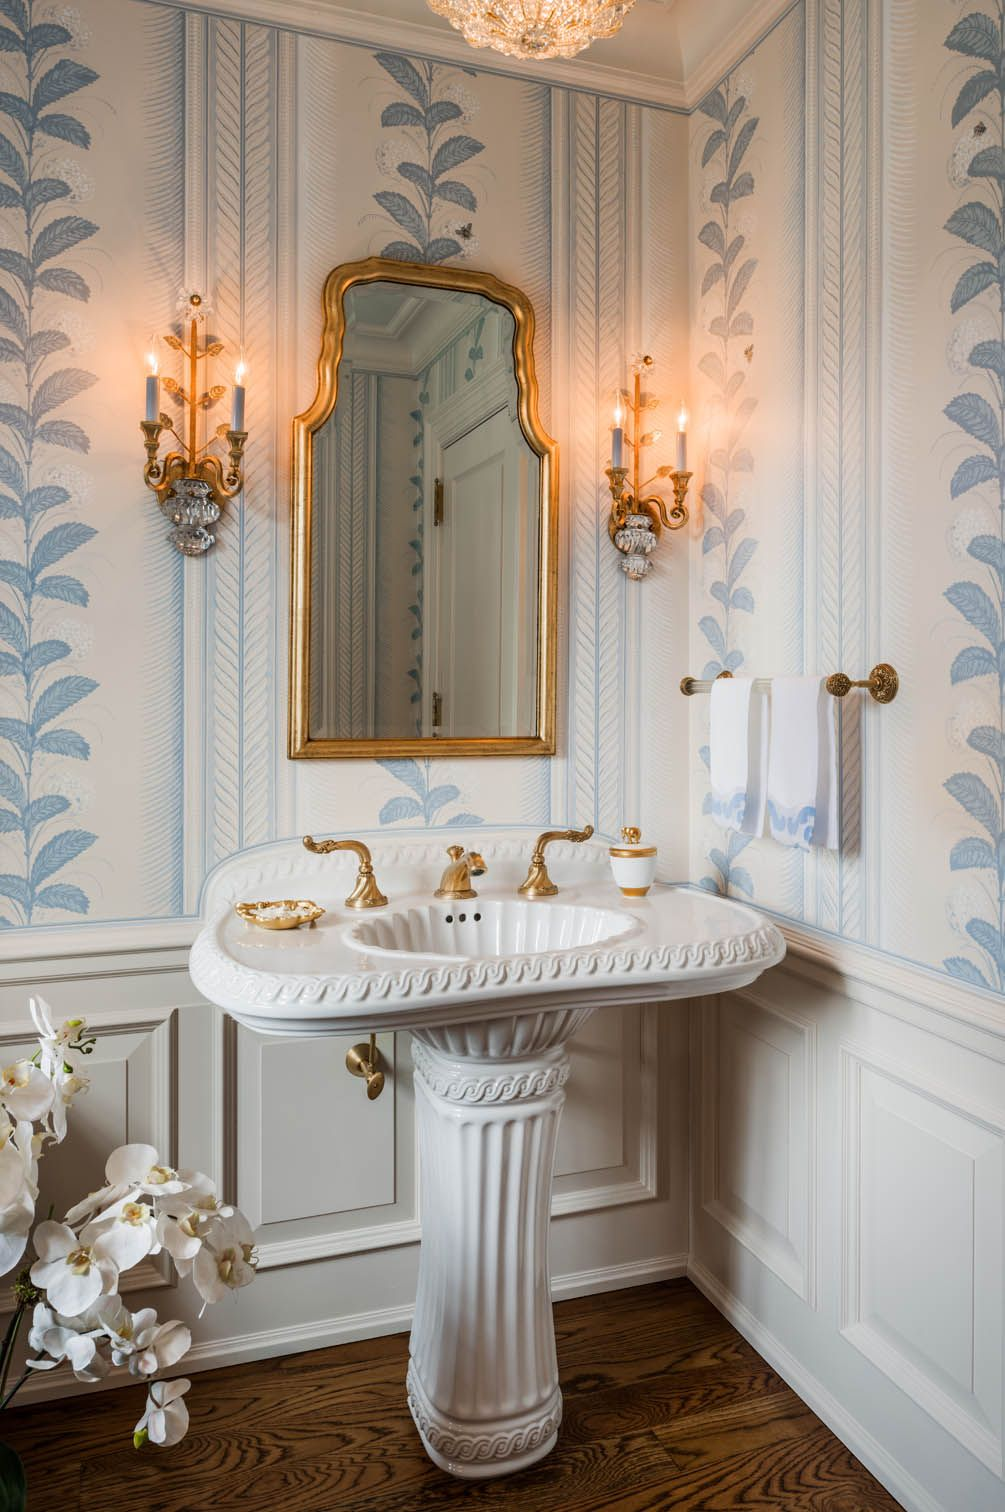 Lavish Bathrooms A Lavish Pedestal Sink And Fixtures Blend Nicely With The Delicate